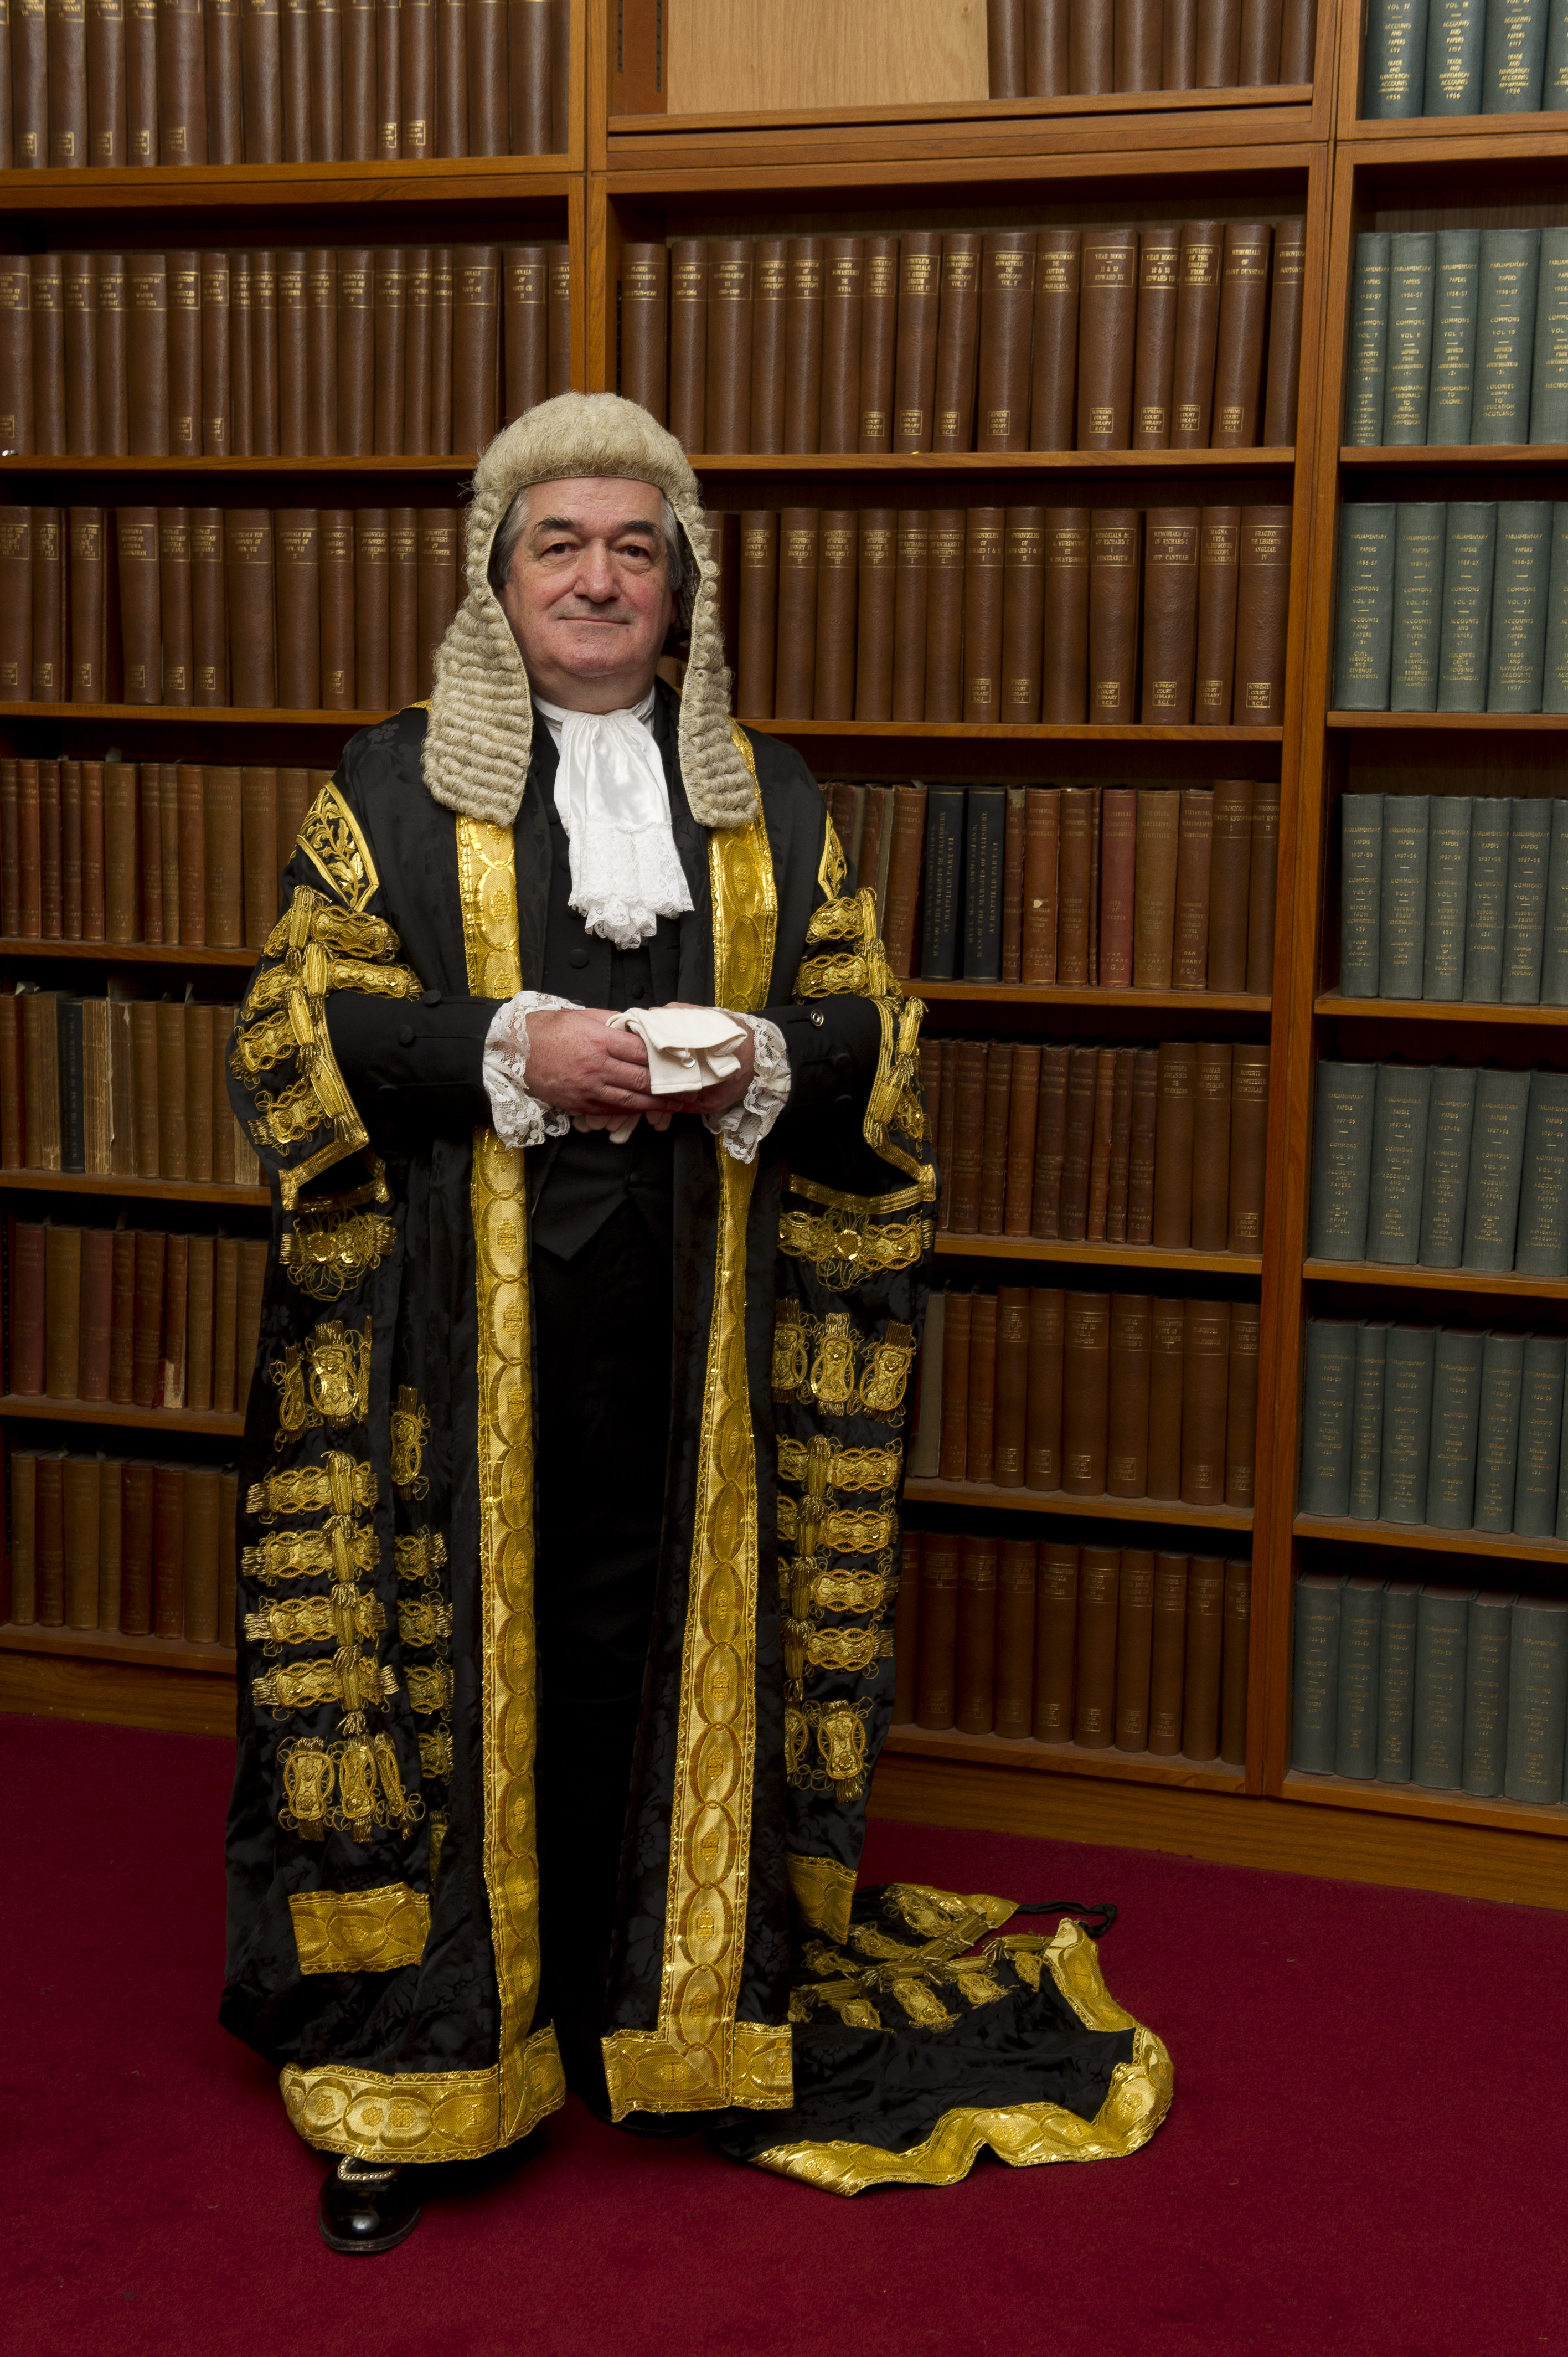 Justice Munby , President of the Family Division Sir James Munby (born 27 July 1948) is a British judge who is currently President of the Family Division of the High Court of England and Wales.